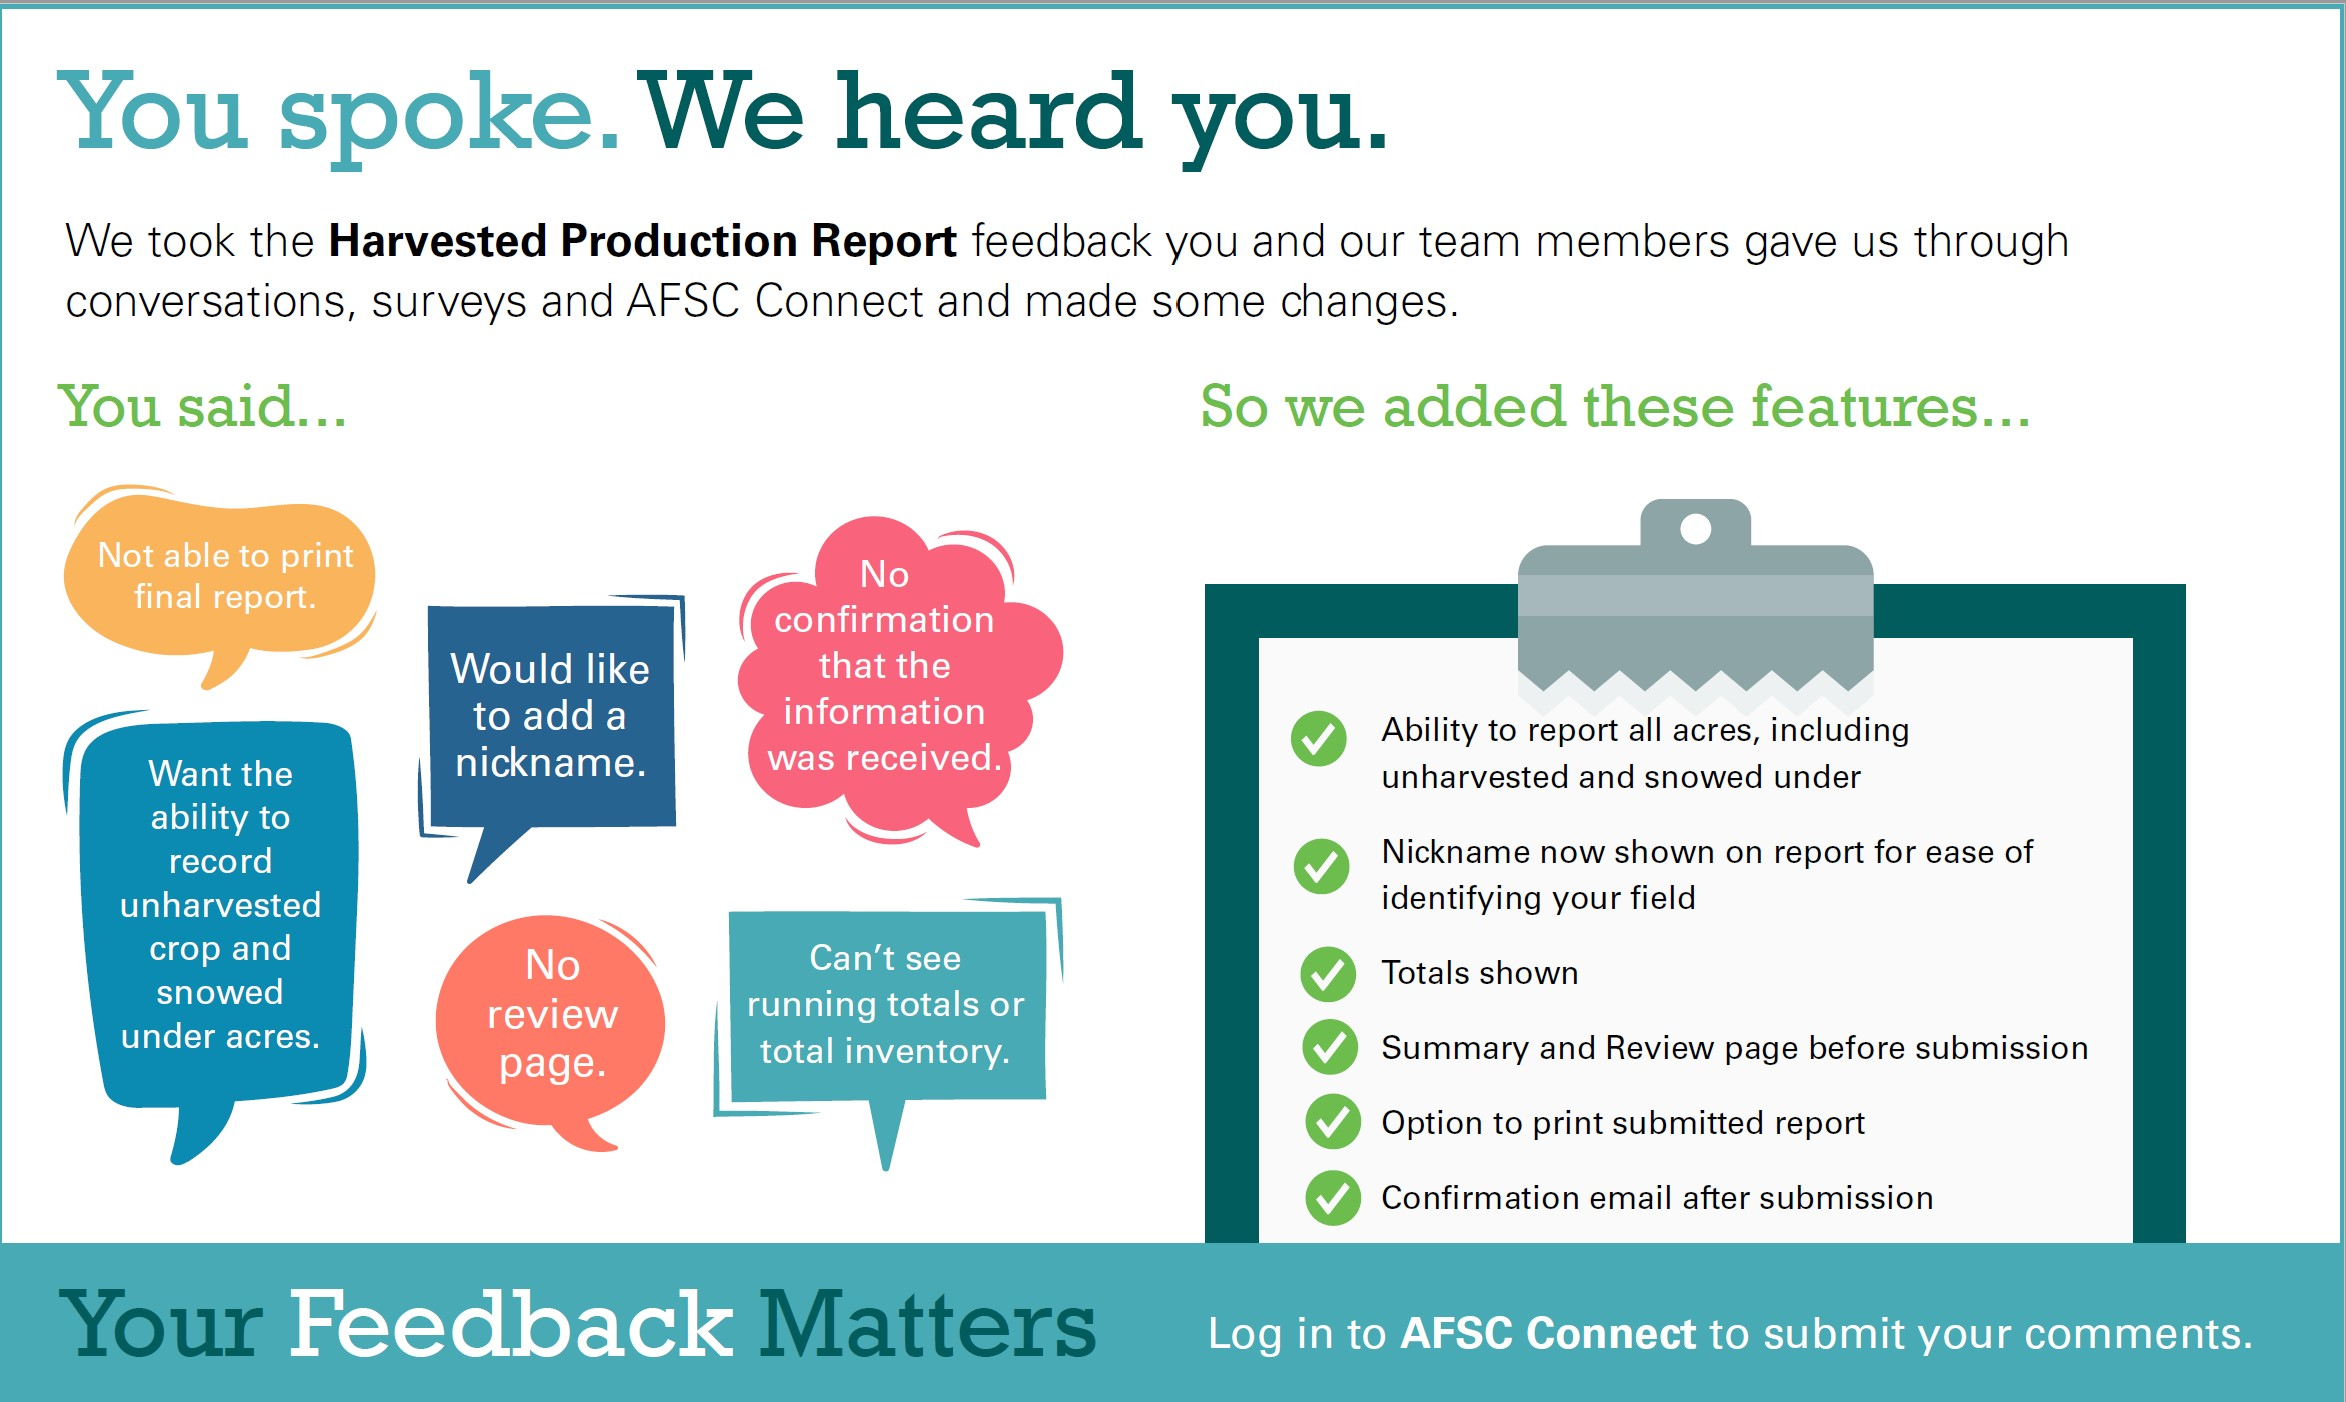 An infographic outlining recent improvements to the Harvested Production Report process